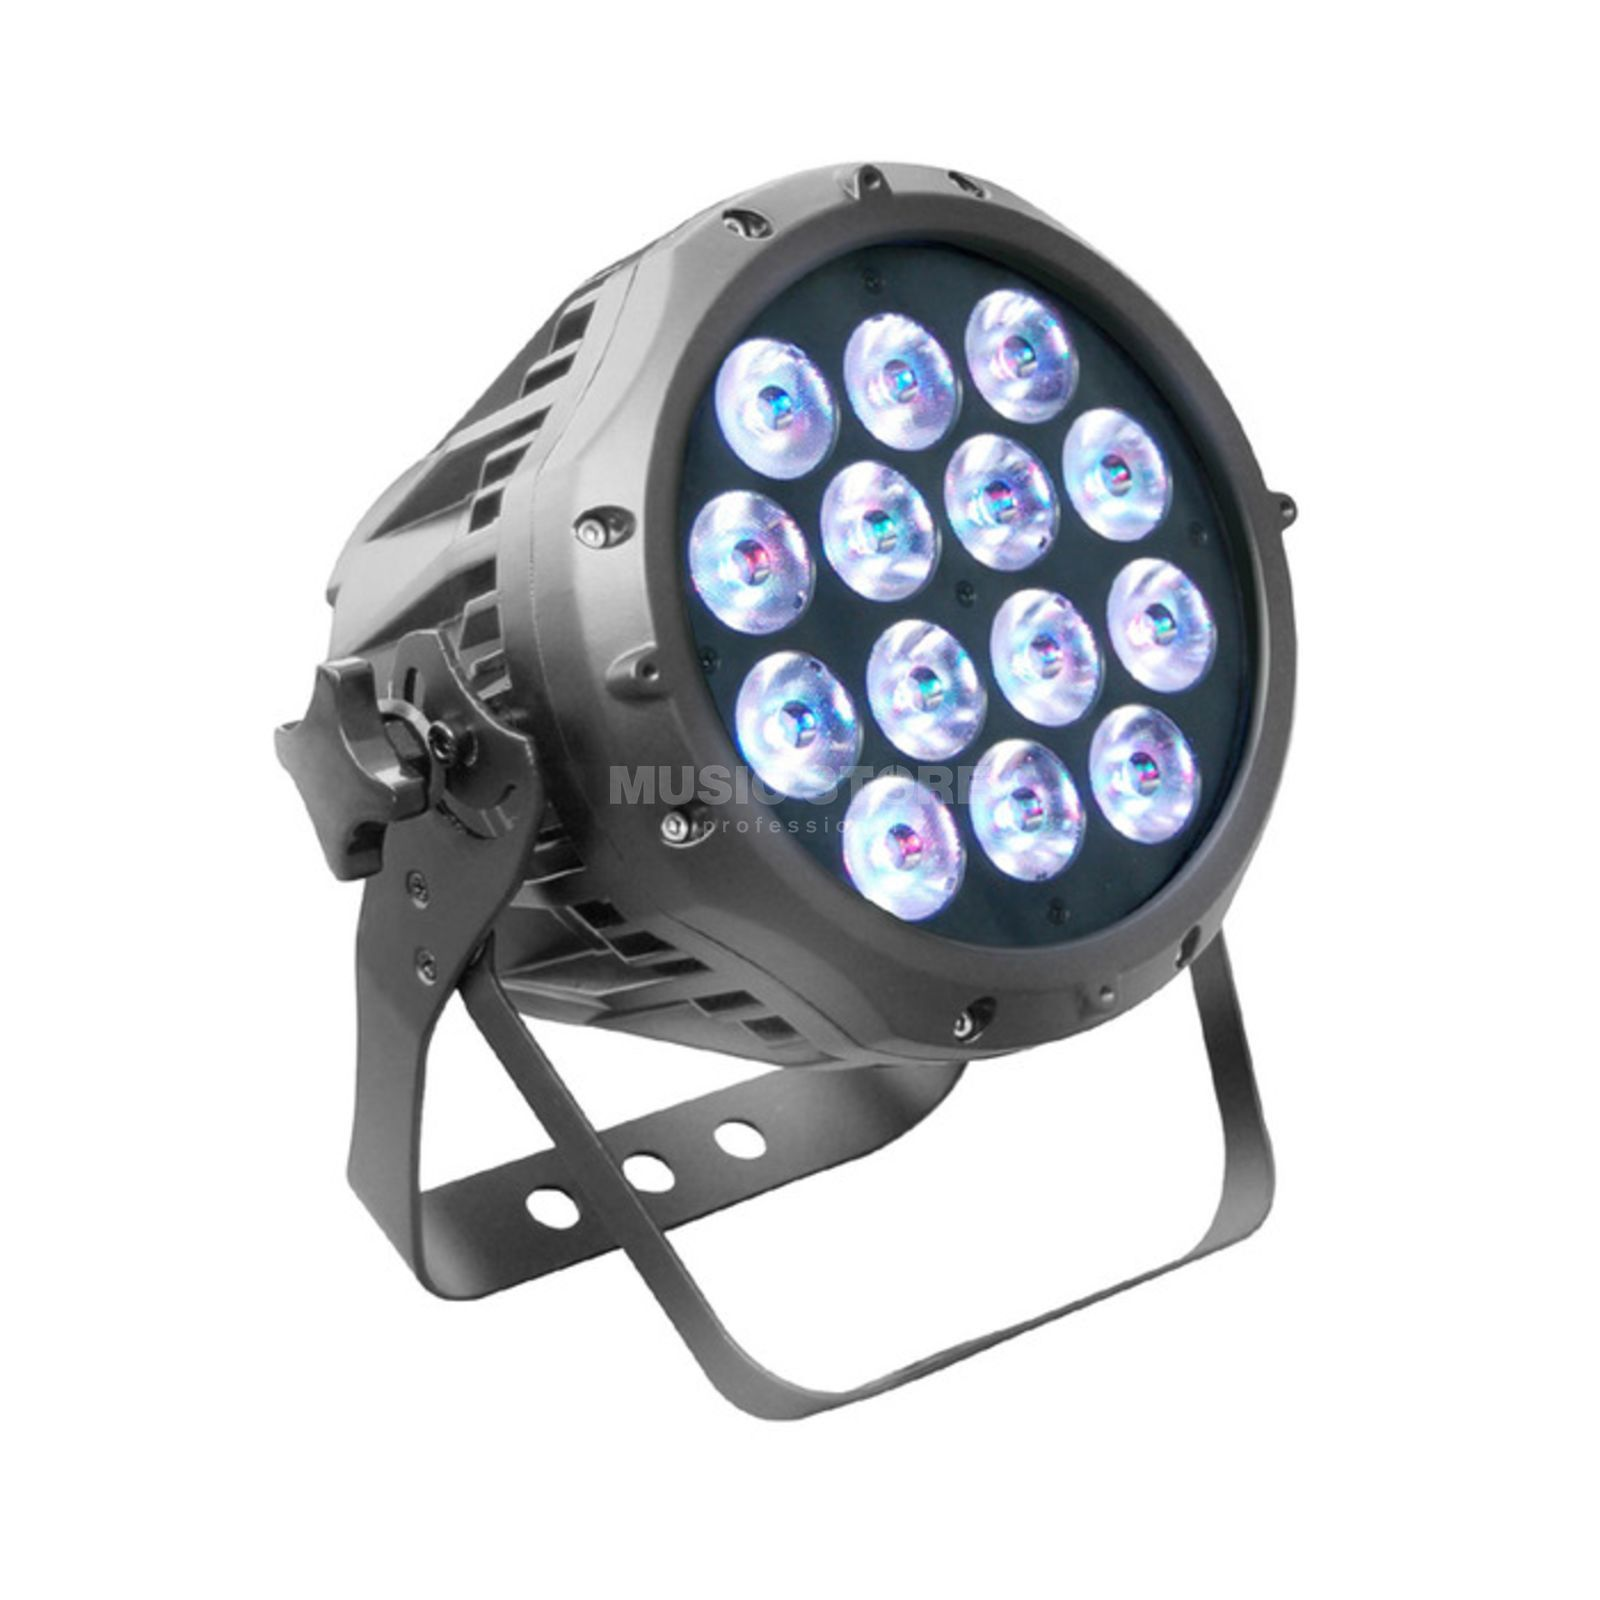 Welaku Performance Fixture SB MKII Stage Beamer, IP67 Product Image